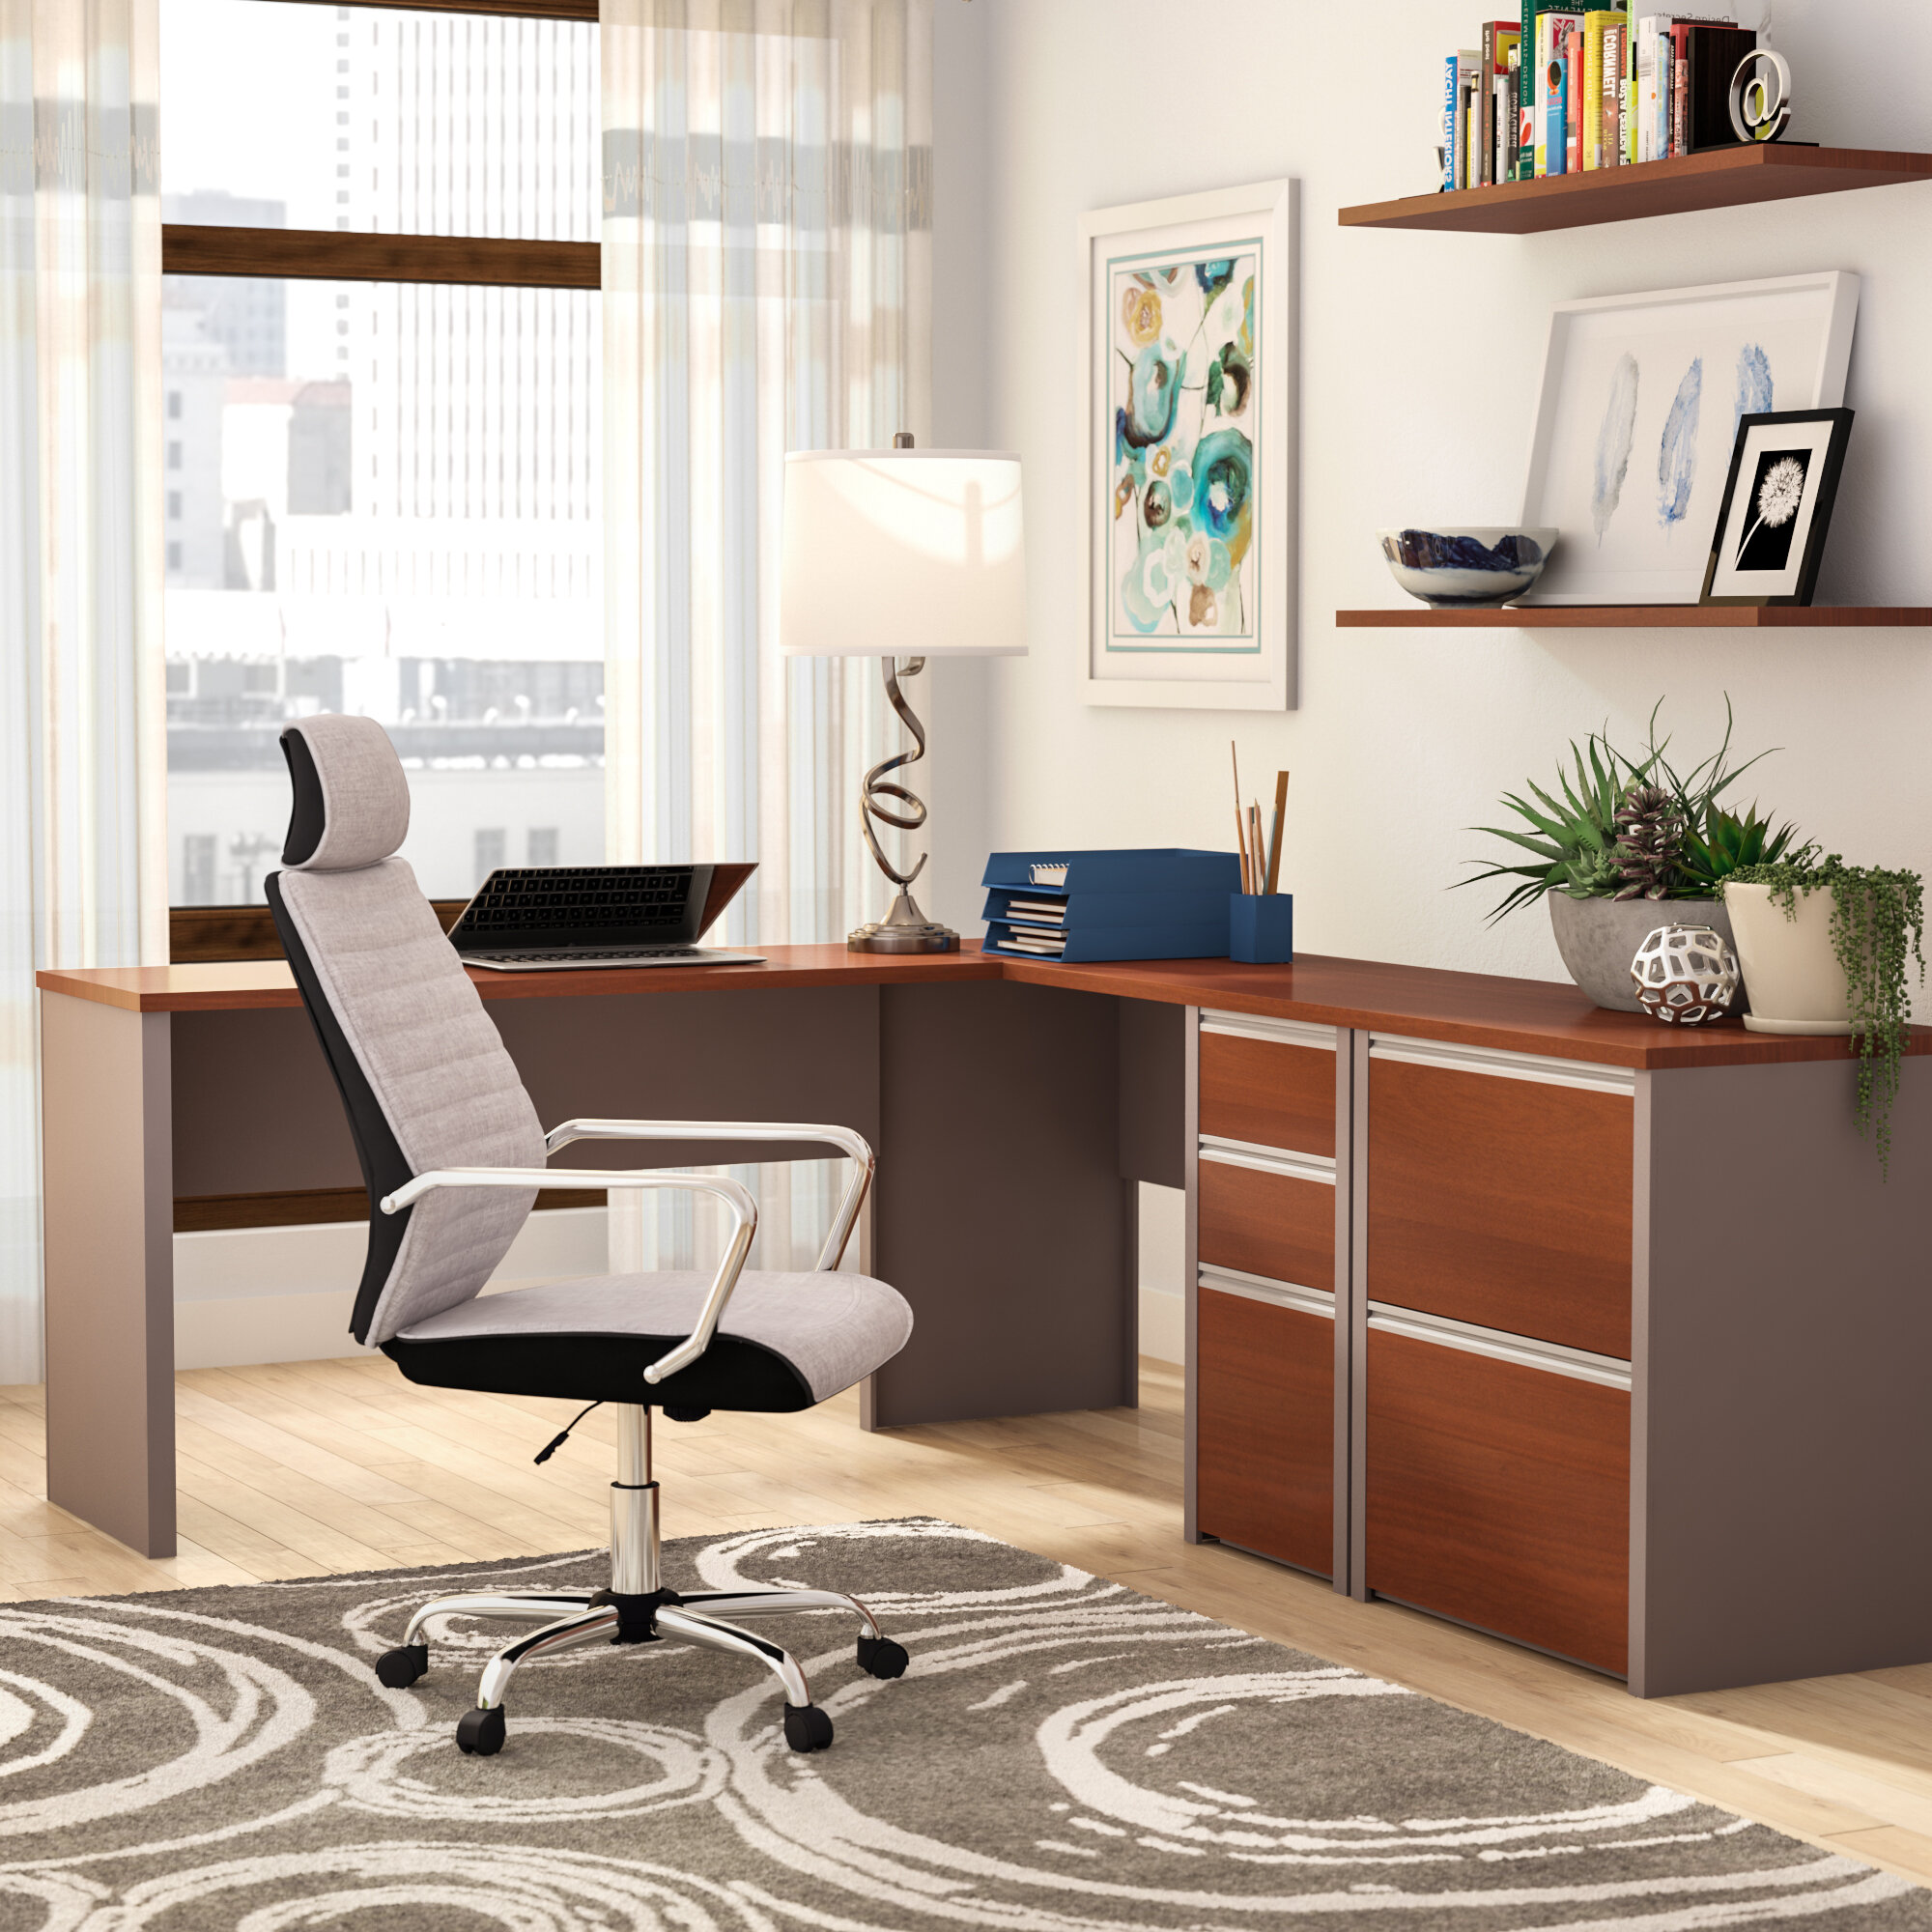 l desk office. Latitude Run Karla 2 Piece L-Shaped Desk Office Suite \u0026 Reviews | Wayfair.ca L